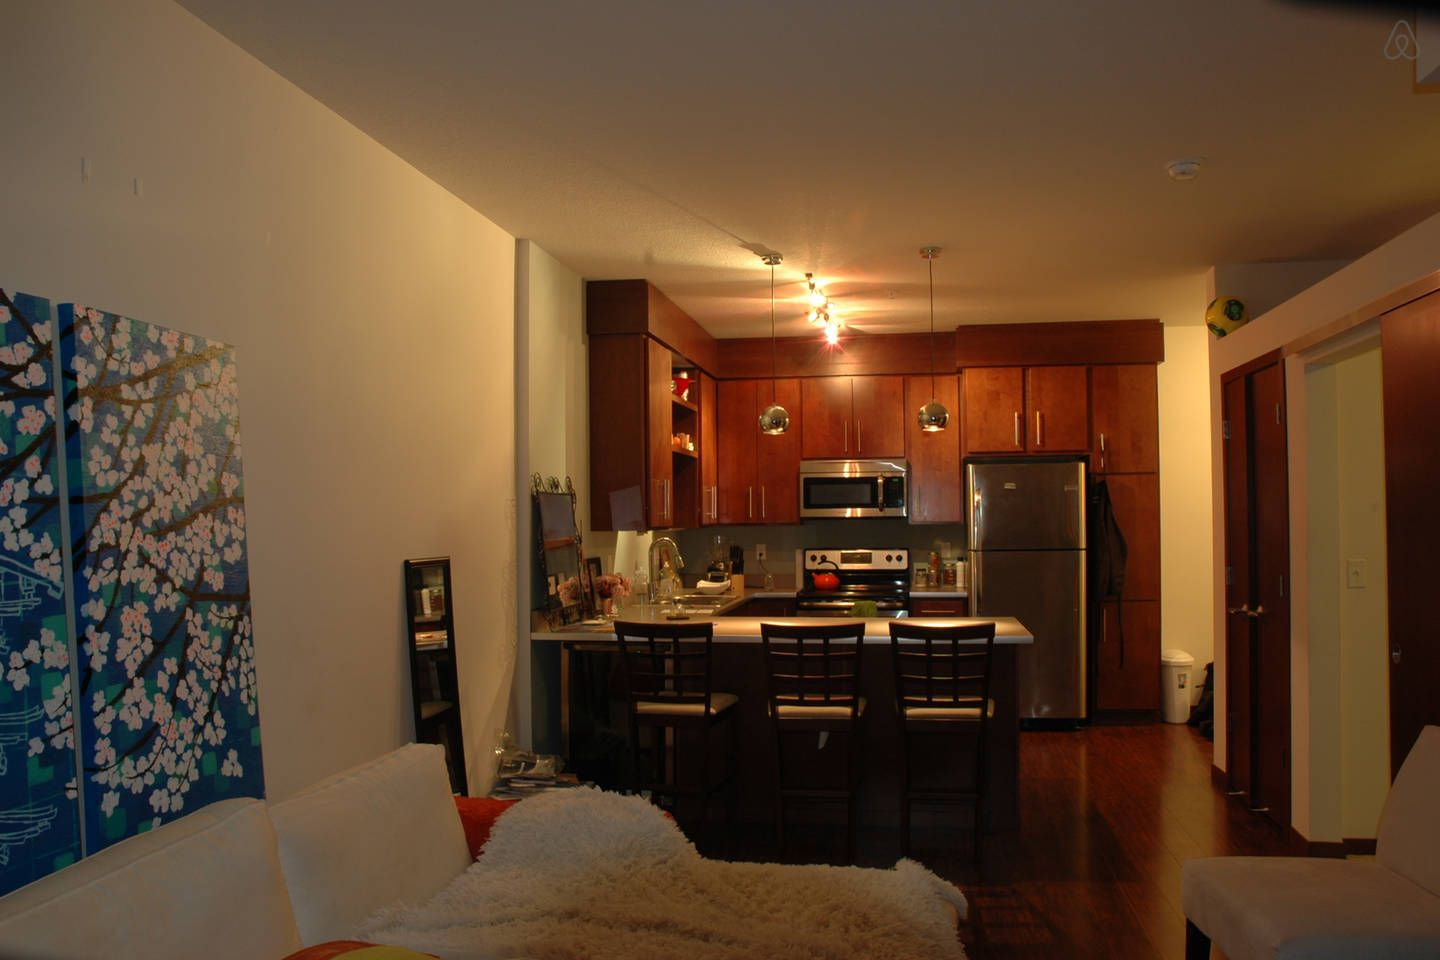 Downtown Orchid In Minneapolis Minnesota Vacation Vacation Home Condo Rental